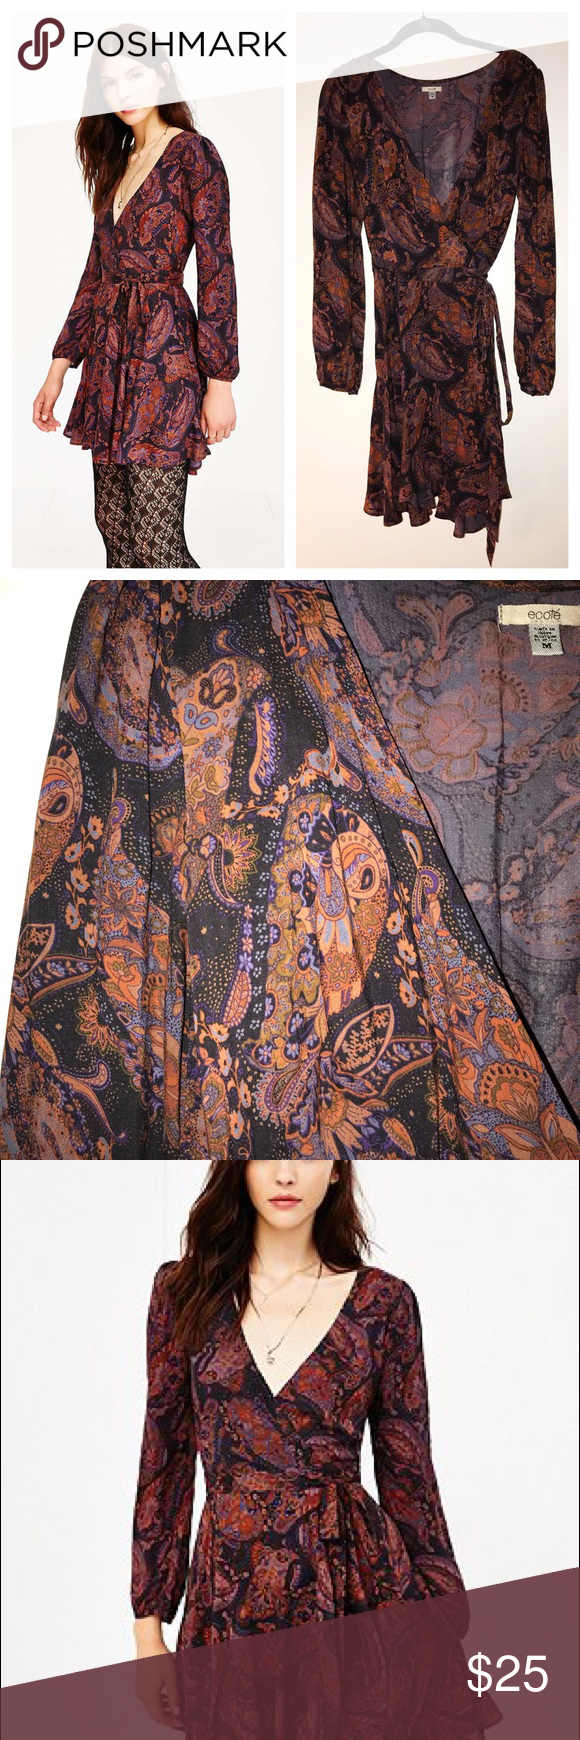 Ecote Paisley Wrap Dress Used / Urban Outfitters / Would fit Small or Med , I bought M to have it be slightly roomy, can be tied tighter with the wrap Ecote Dresses Long Sleeve